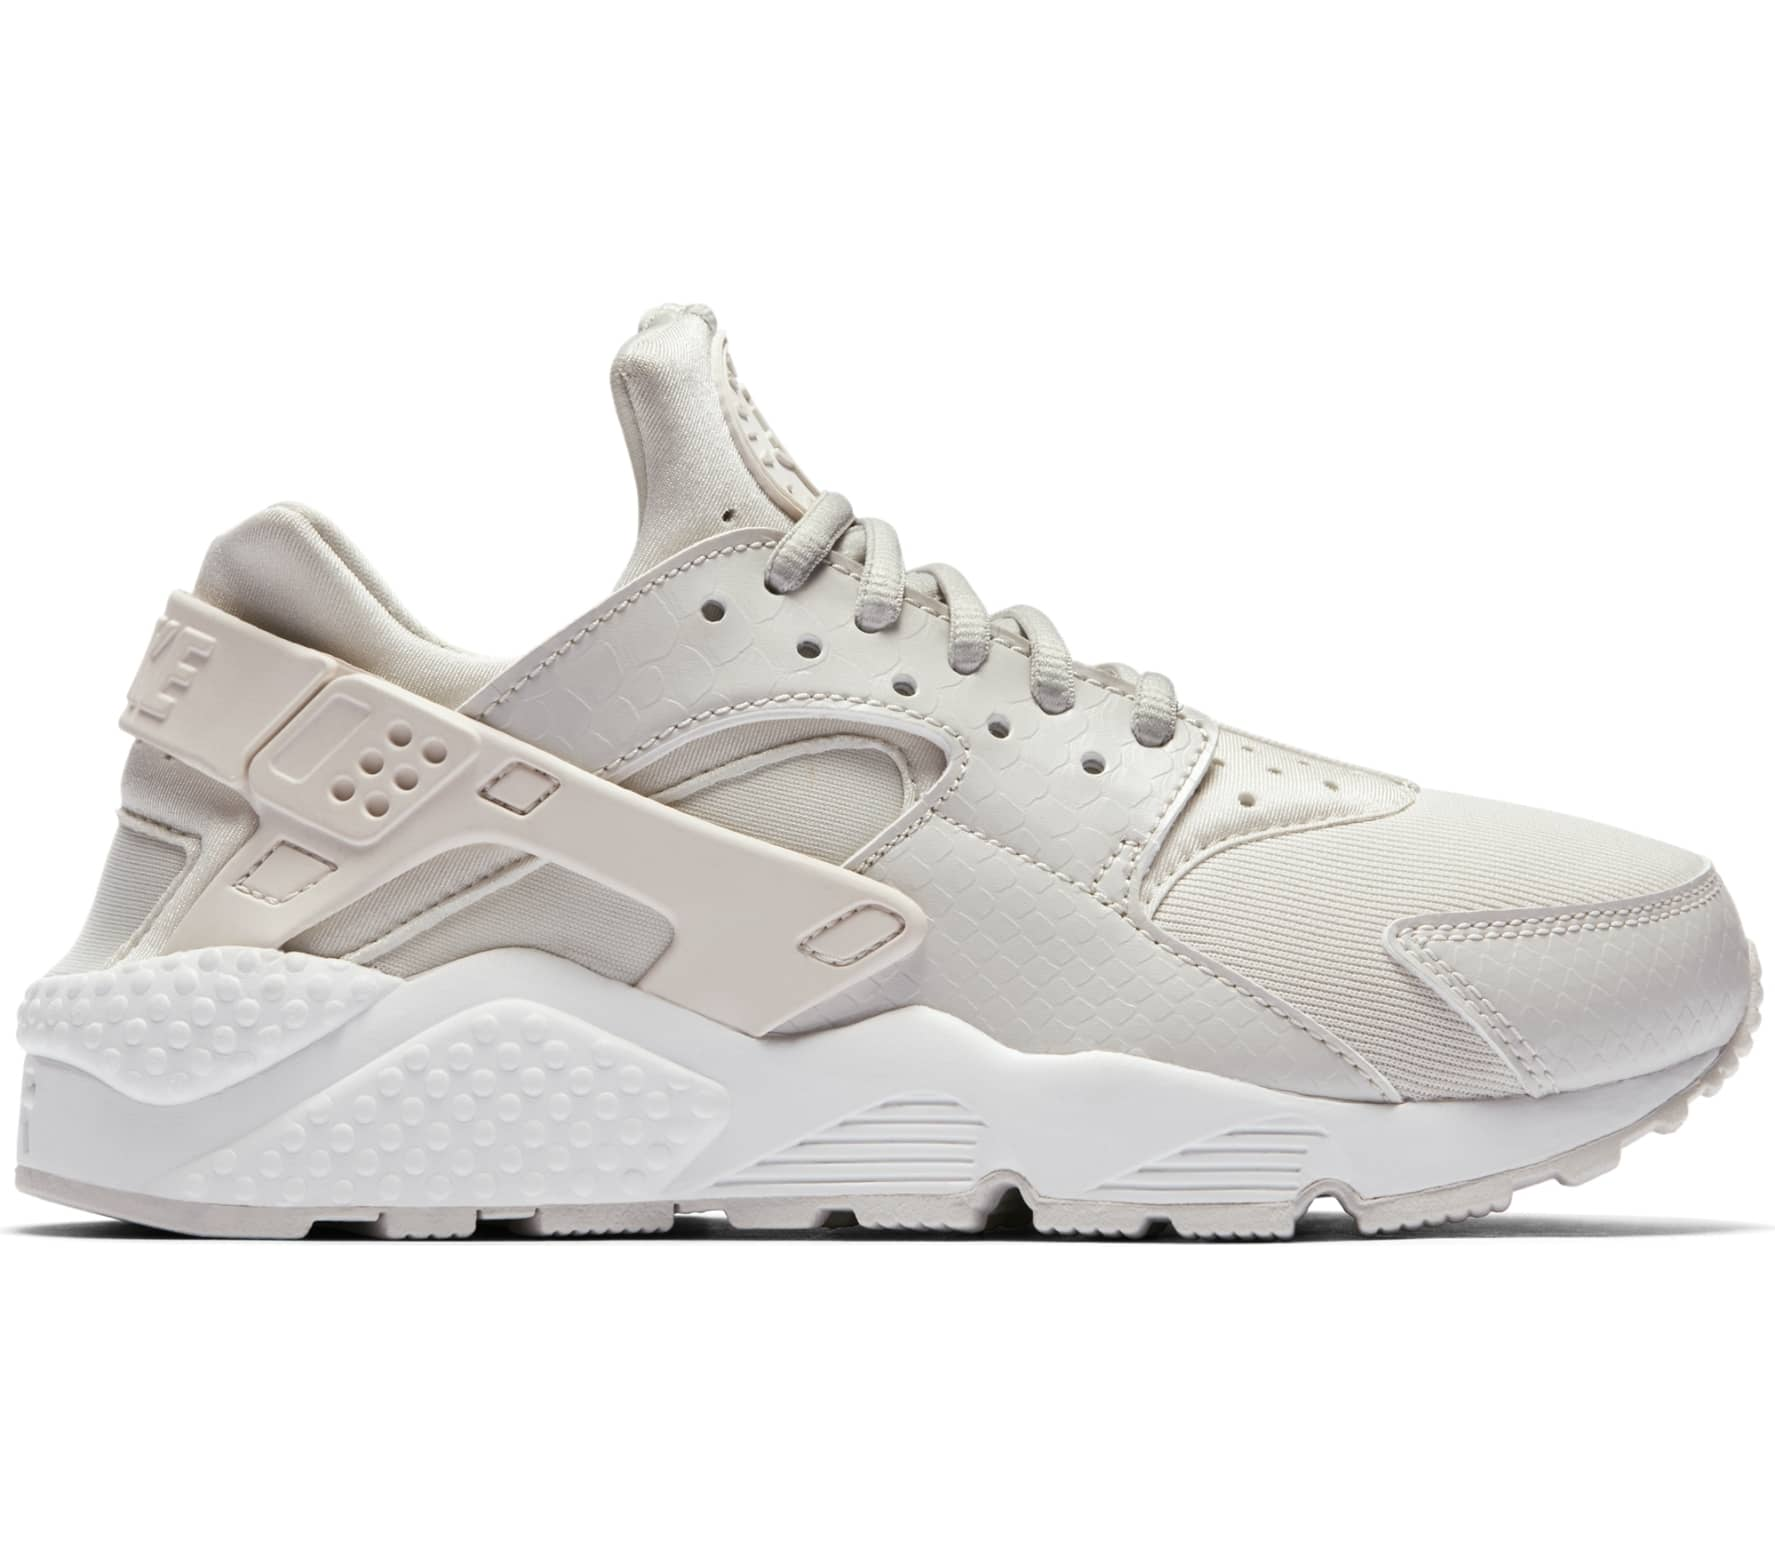 Nike - Air Huarache Run Damen Sneaker (beige) - EU 42 - US 10